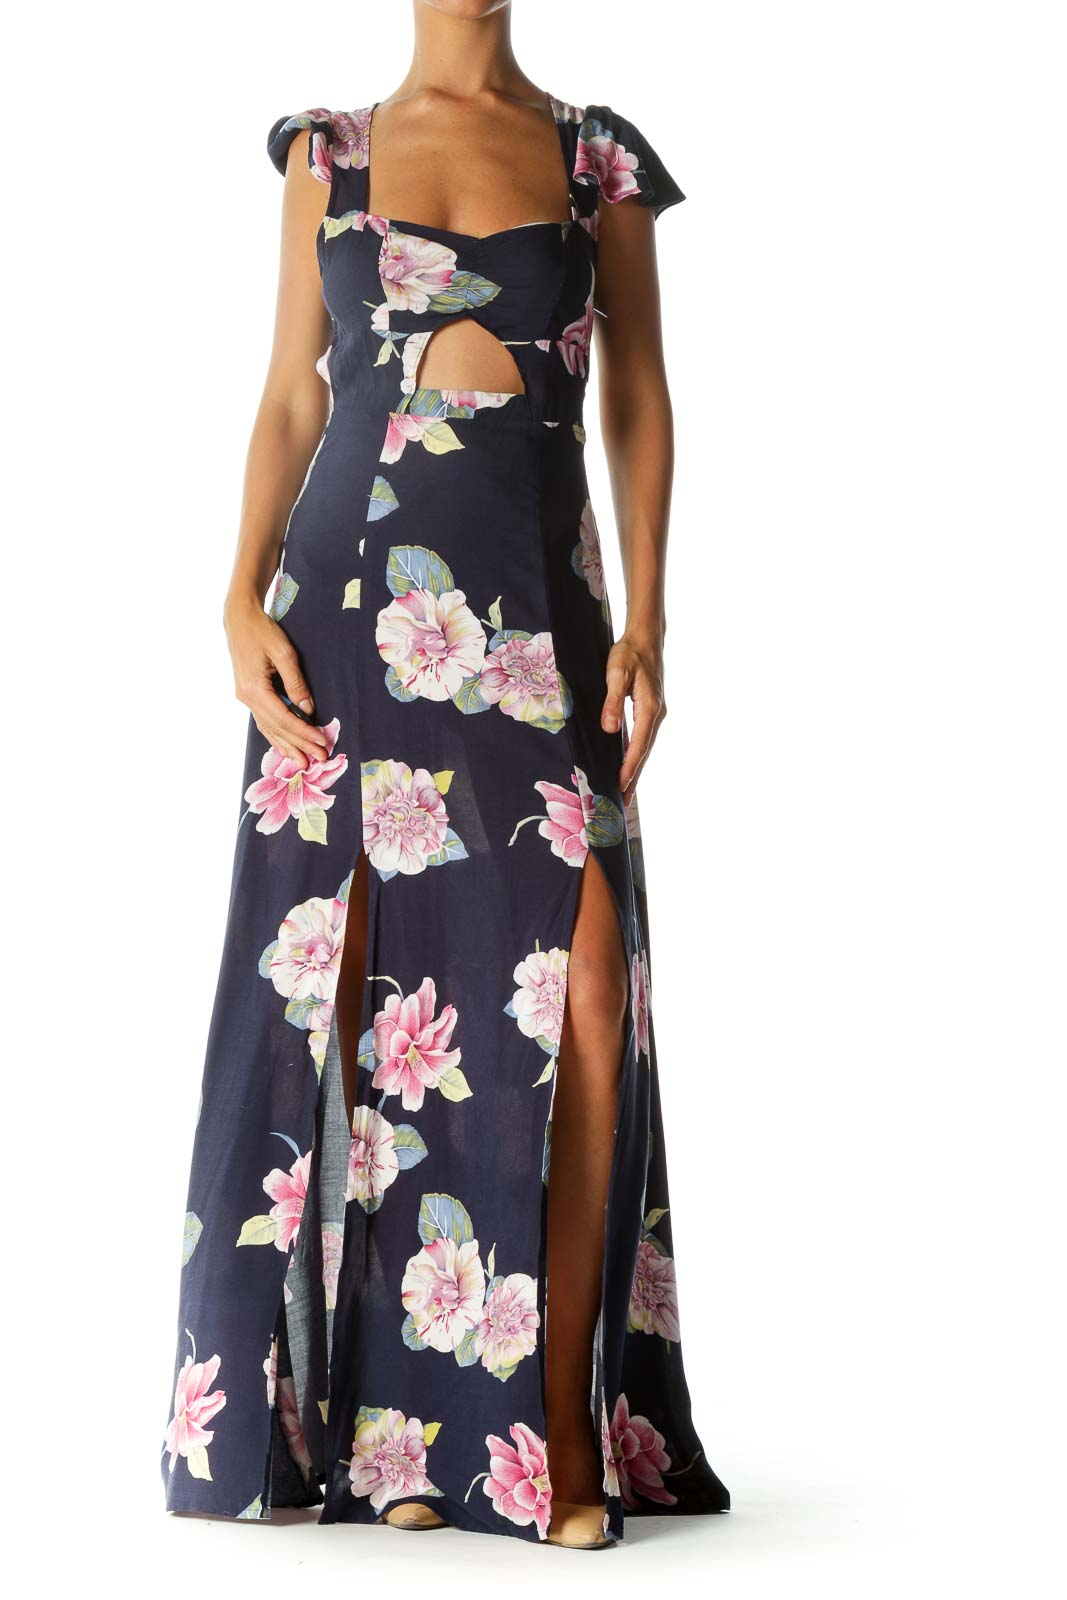 Navy Blue Pink Yellow White Floral Print Cut-Out Leg-Opening Day Dress